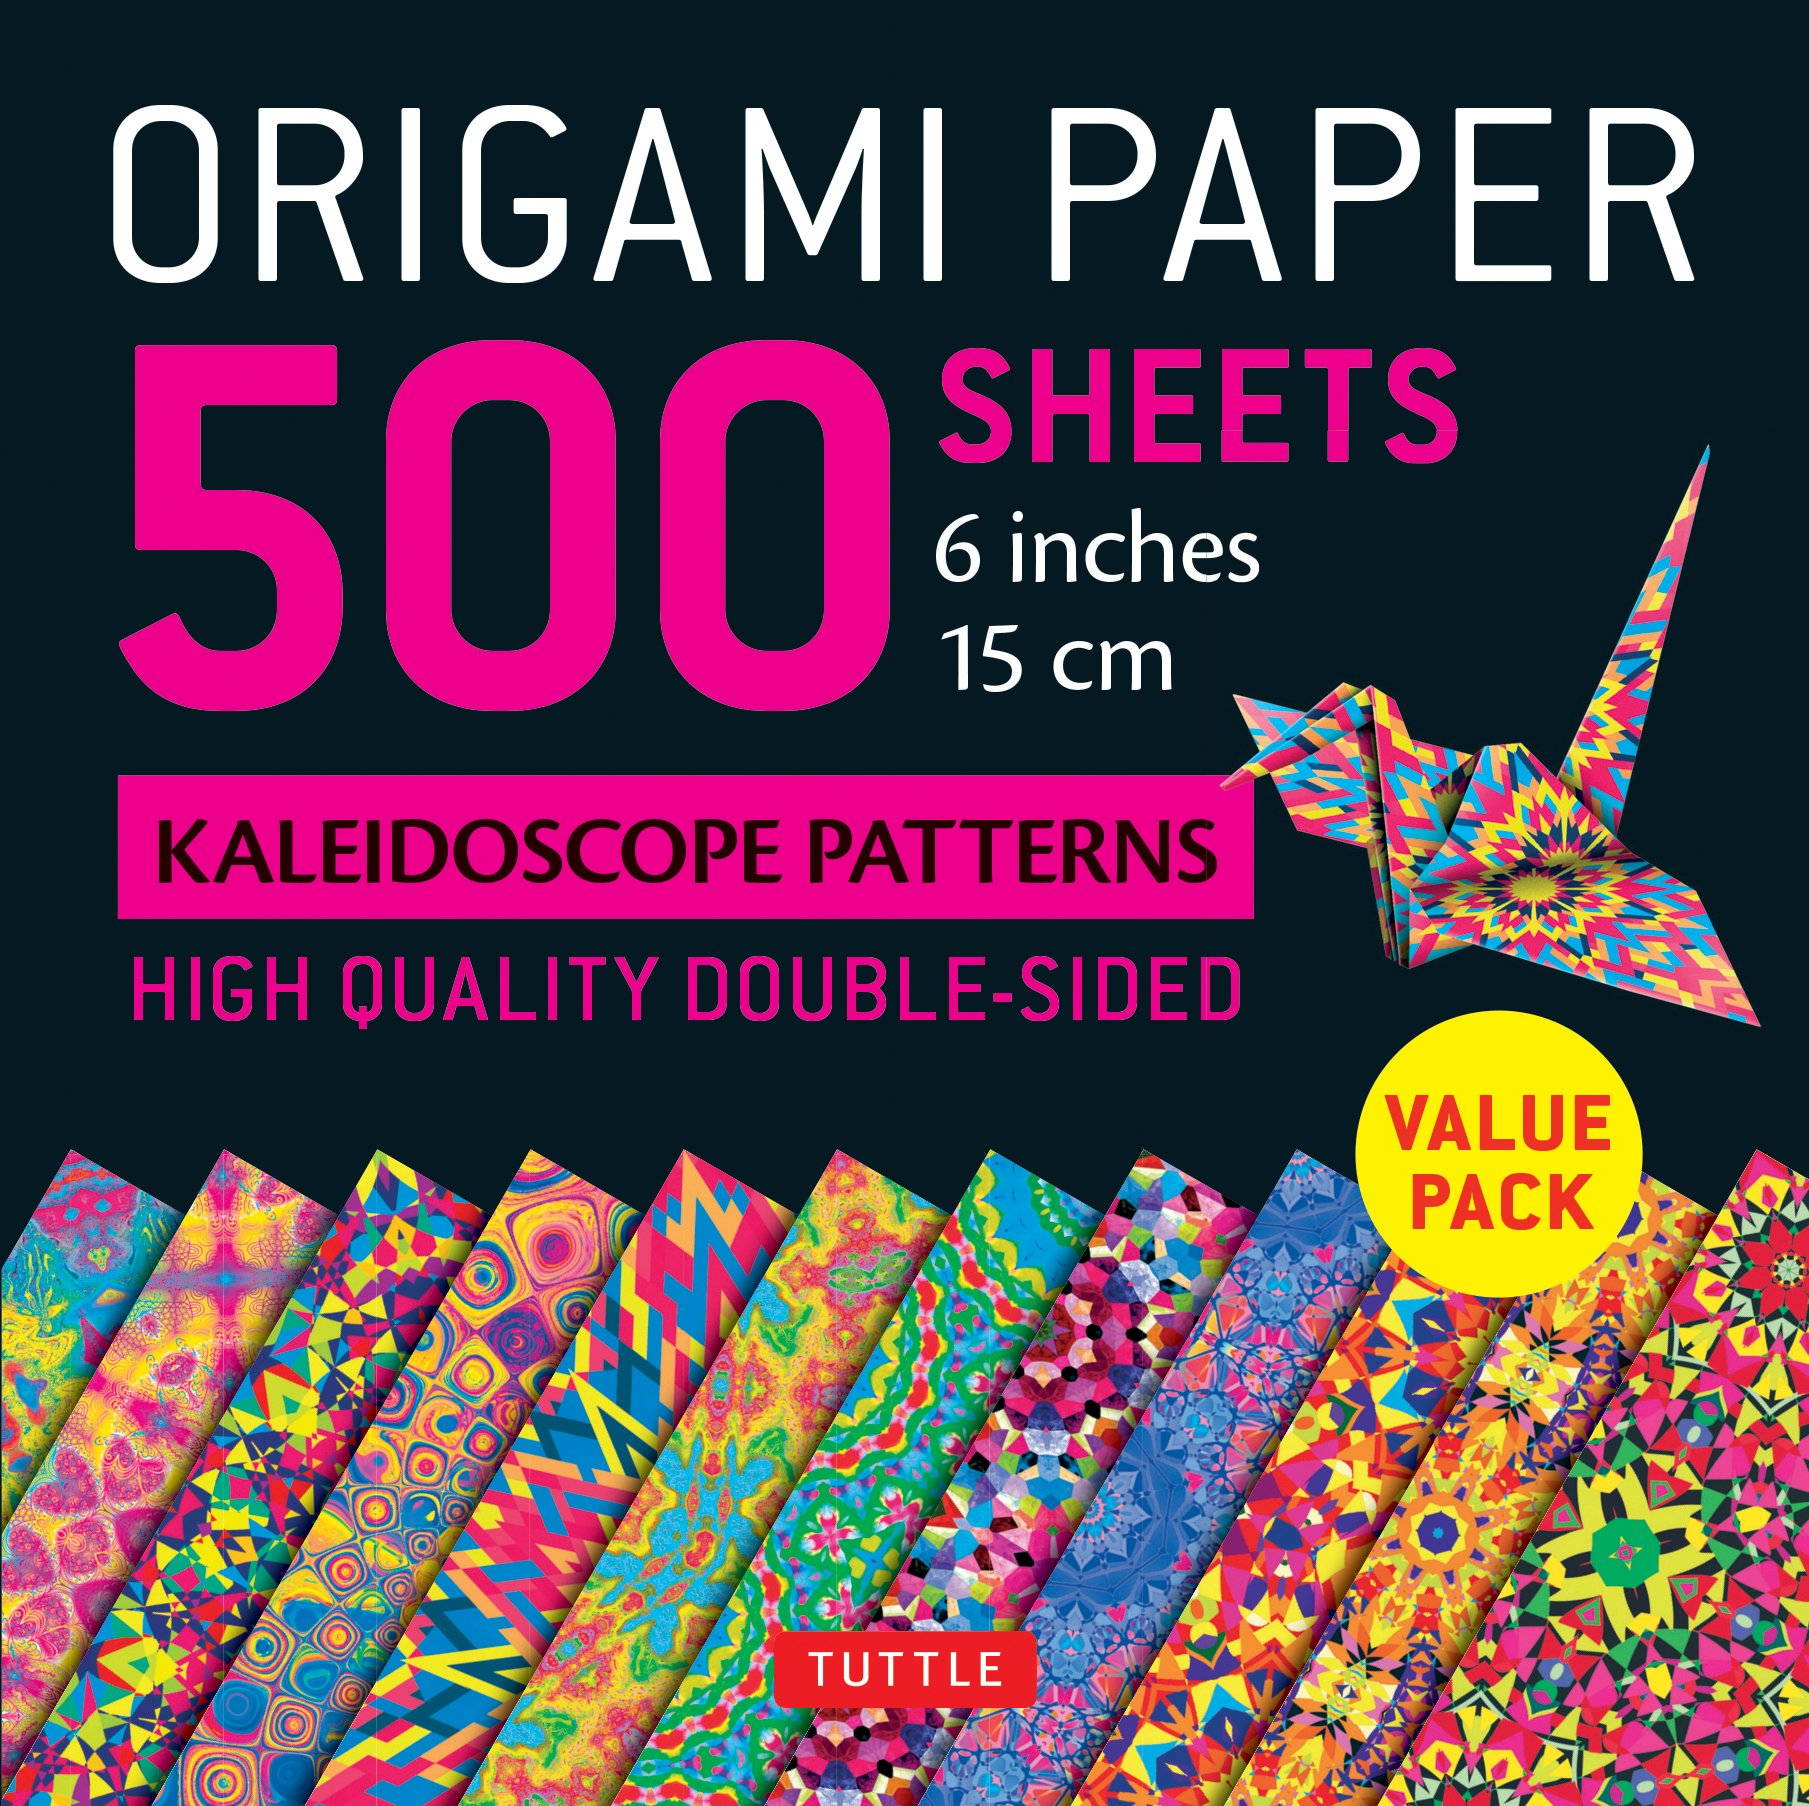 """Origami Paper 500 sheets Kaleidoscope Patterns 6"""" (15 cm): Tuttle Origami Paper: High-Quality Origami Sheets Printed with 12 Different Designs: Instructions for 8 Projects Included ebook"""